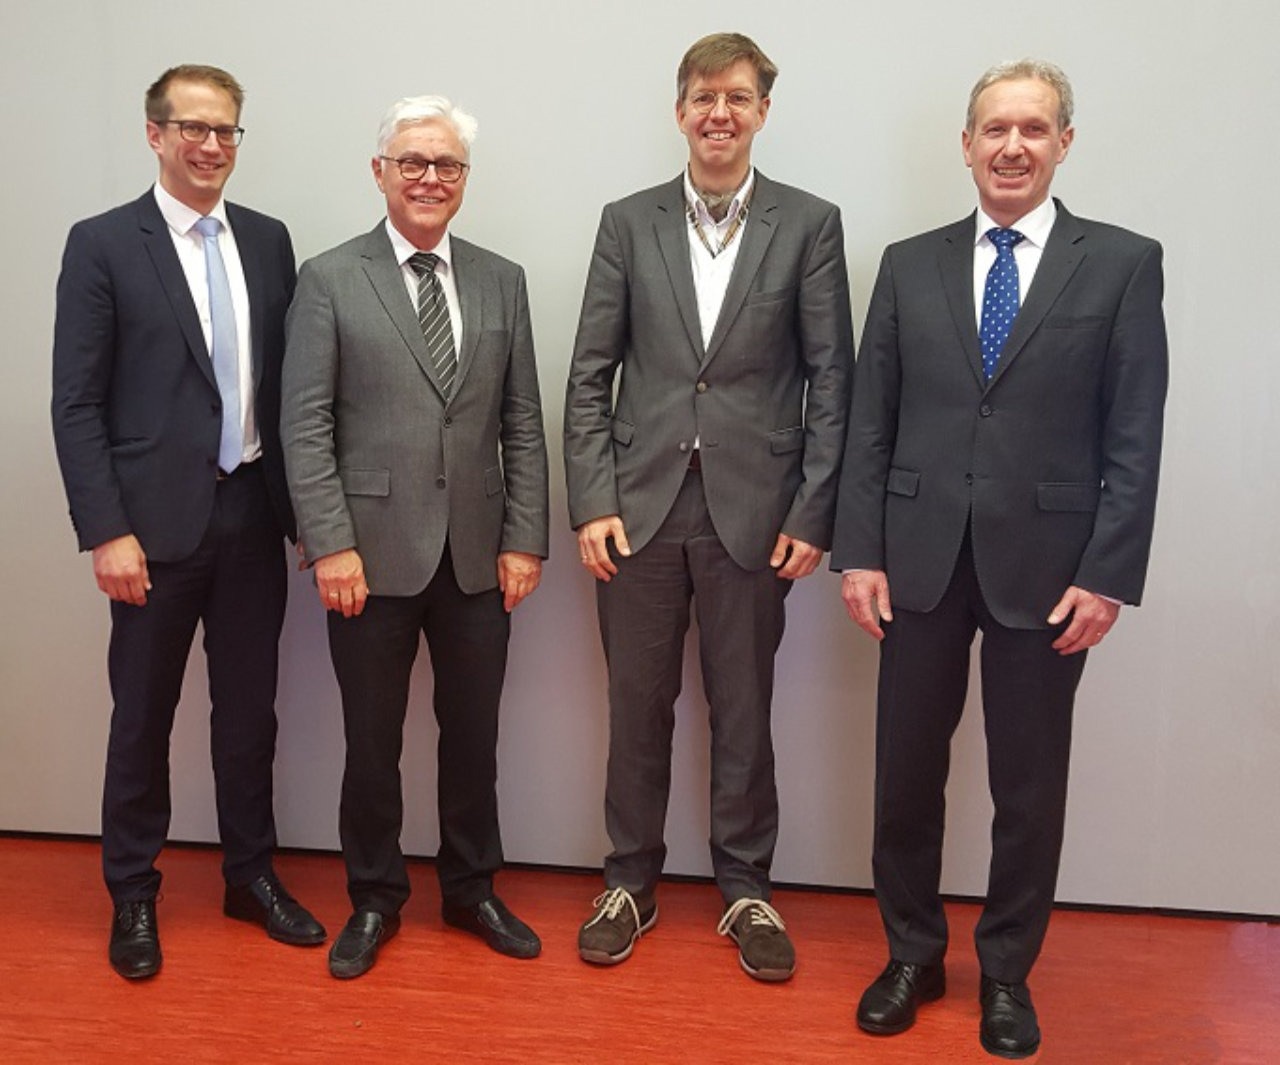 The management board of Technologie-Initiative SmartFactory KL e.V. (from left to right): Dr. Thomas Bürger, Prof. Dr. Detlef Zühlke (Chairman), Andreas Huhmann, Klaus Stark. Photo: SmartFactoryKL